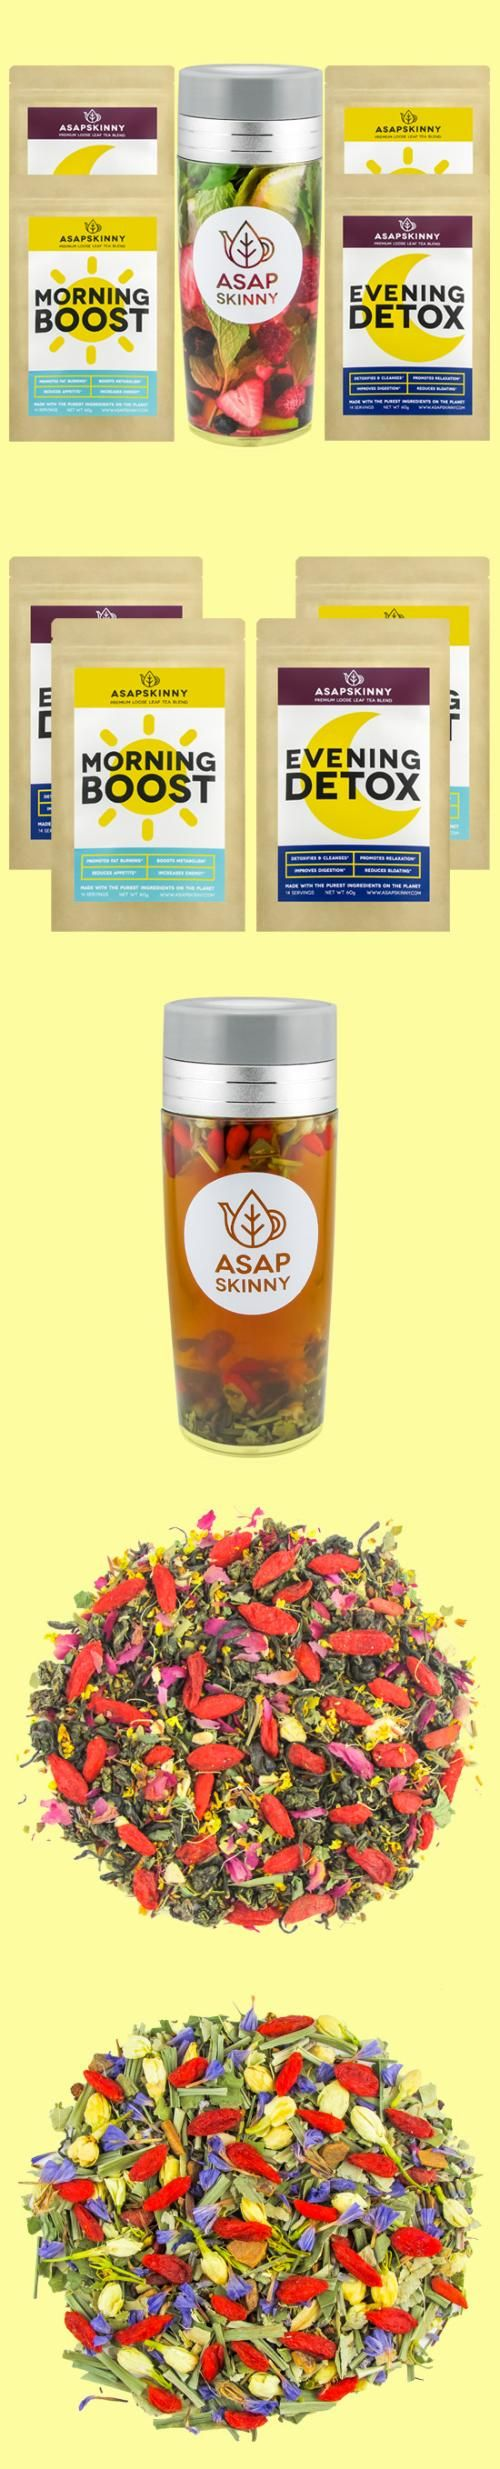 #1 BEST DETOX TEA EVER! Save money with this package deal! You will receive our 28-Day Teatox along with ASAPSKINNY Tea Bottle. Now you can drink our tea anywhere, anytime. Get fit on the go! Our Teatox is Laxative-Free, Vegan-Friendly and All-Natural. It will help you by Increasing metabolism, Reducing stomach bloat, Suppressing appetite and Improving skin complexion. Low on stock - get it TODAY! www.asapskinny.com